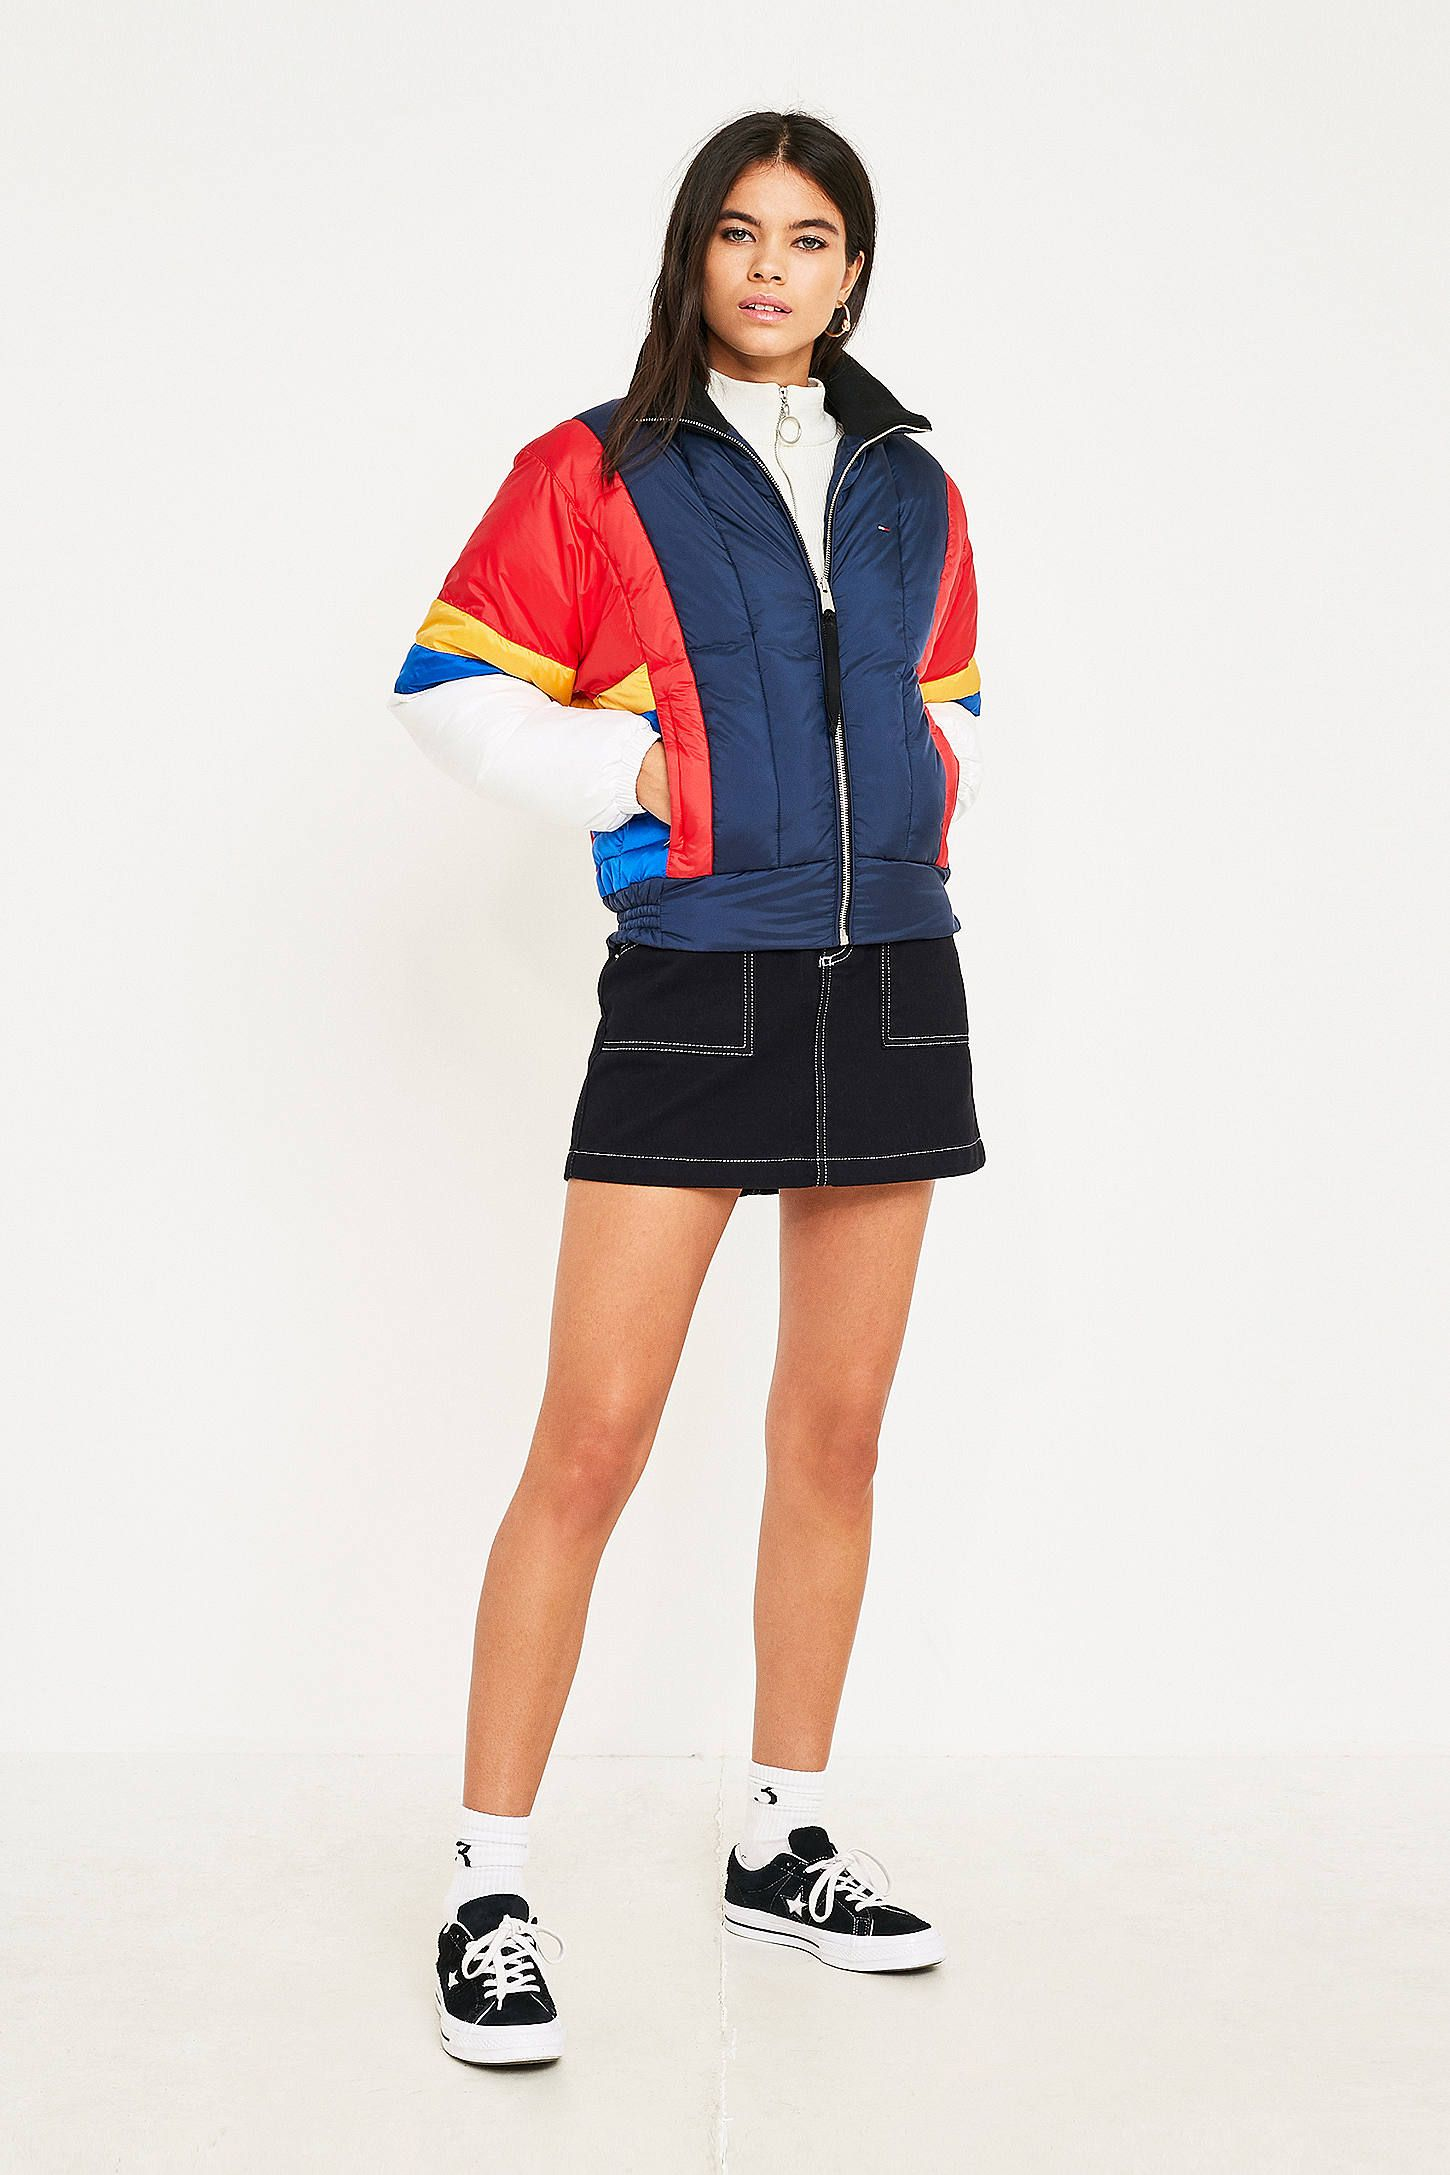 5b8c049a4a3 Tommy Jeans Colourblock Puffer Jacket | PADDED JACKETS AW19 | Puffer ...